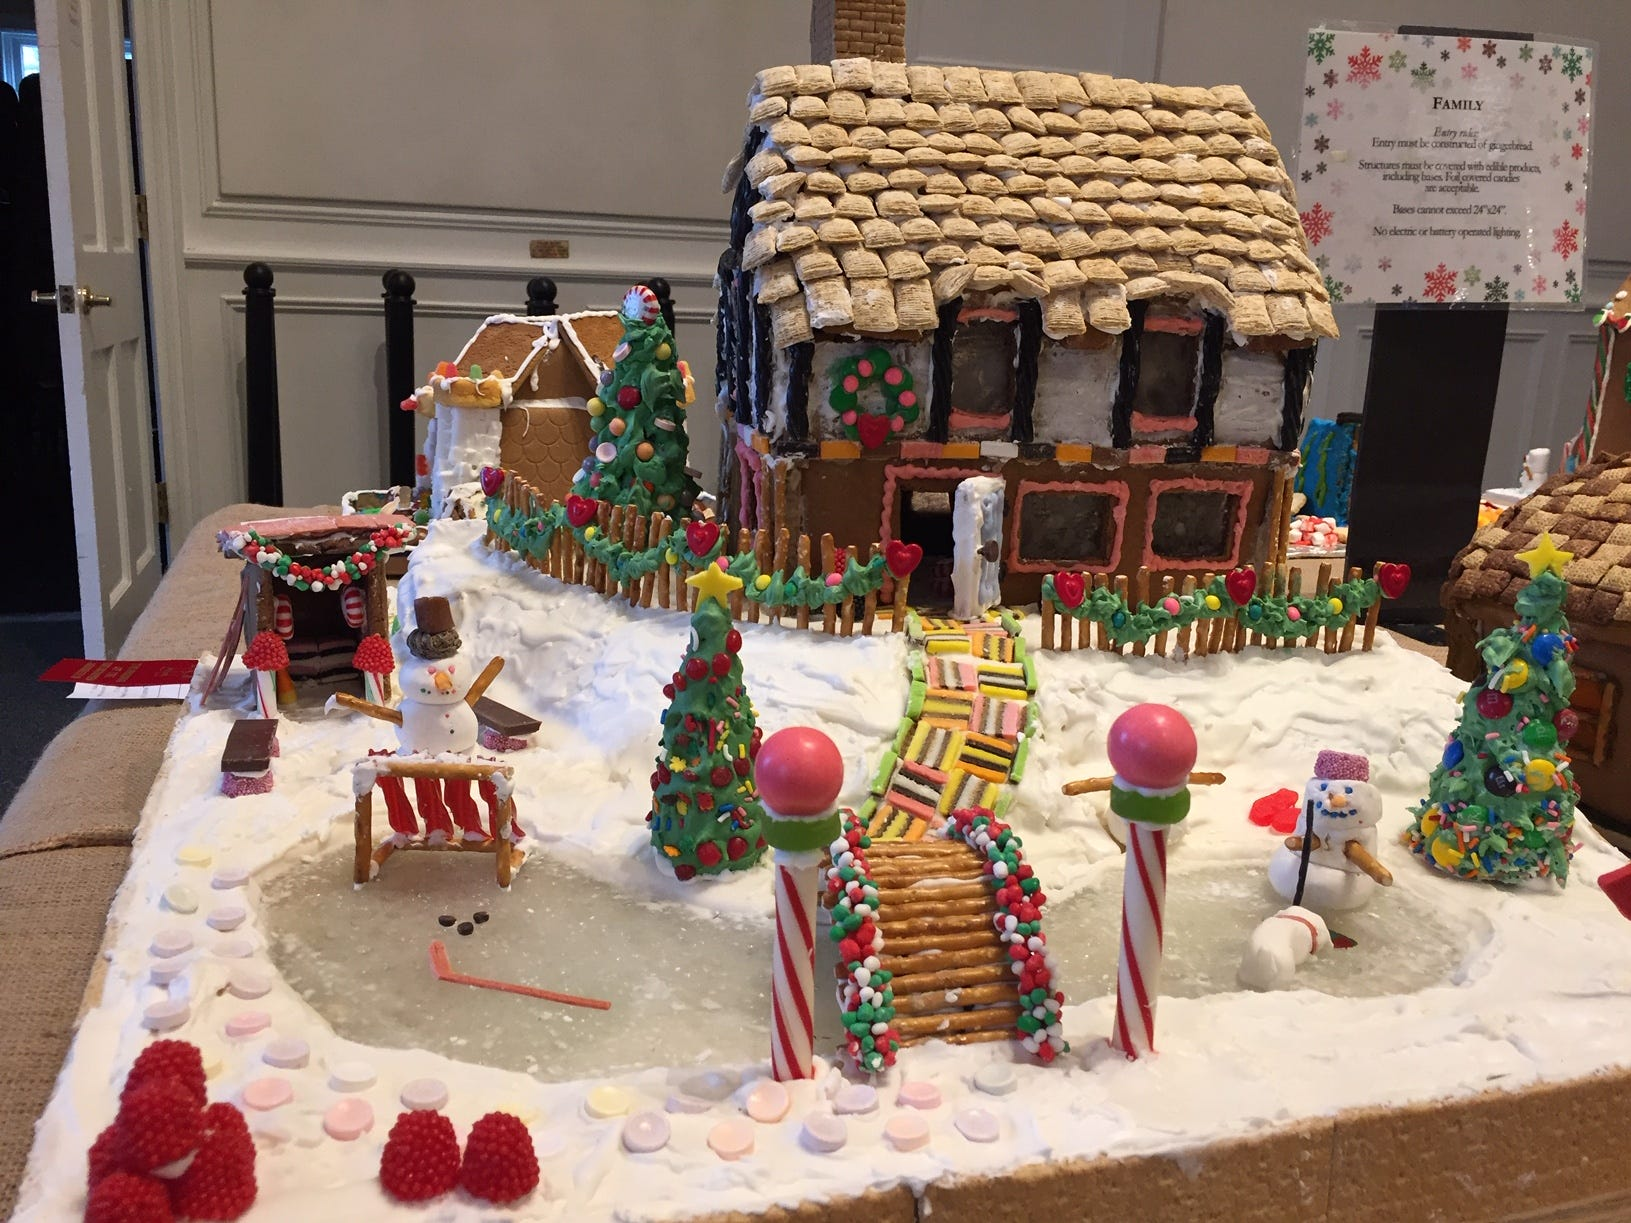 """Ice Fishing"" by the Caputo Family of Millington at the 2018 Gingerbread Wonderland at the Frelinghuysen Arboretum. Family category."